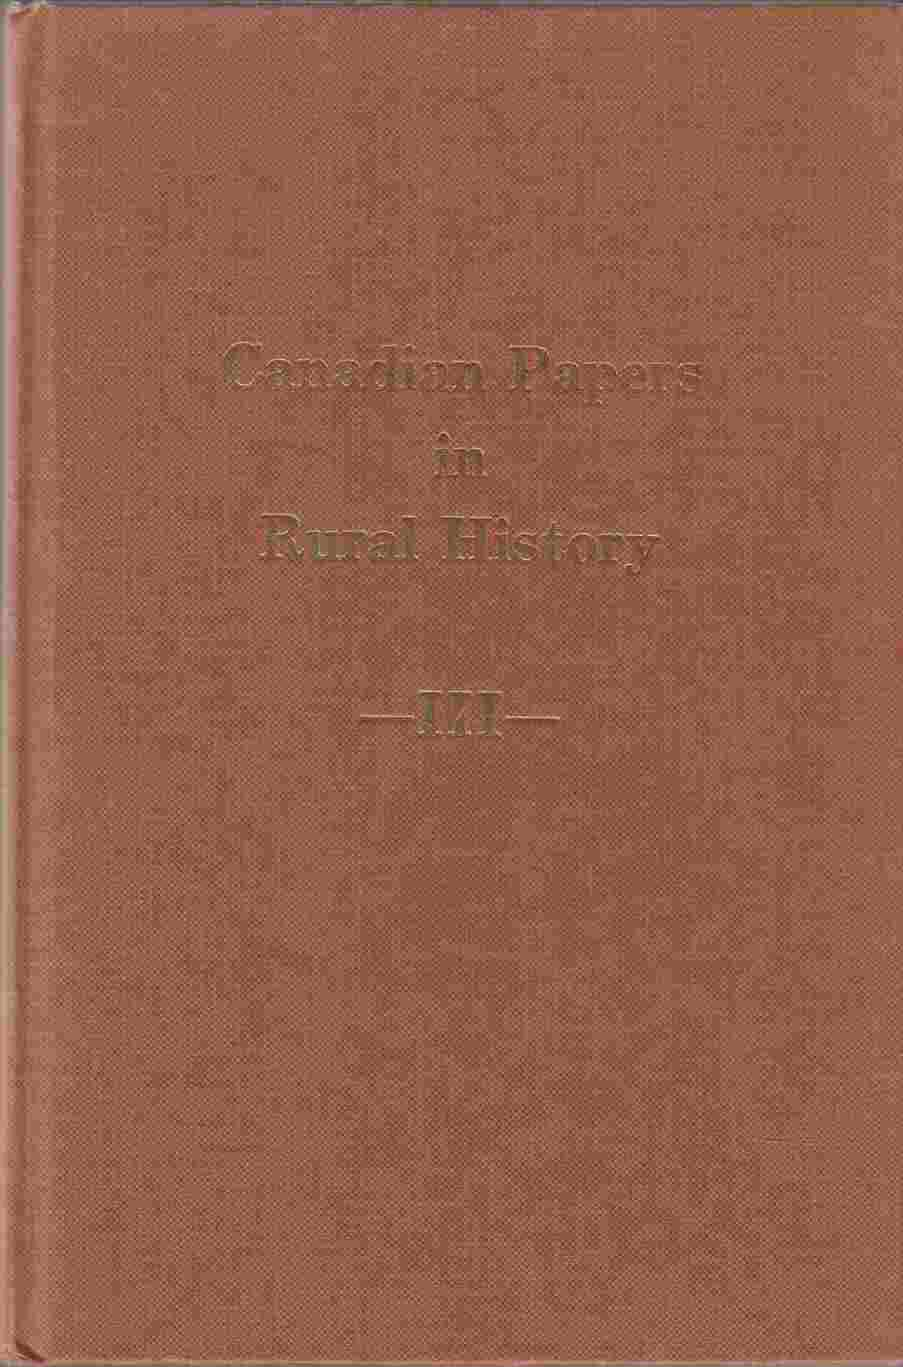 Image for Canadian Papers in Rural History Volume III